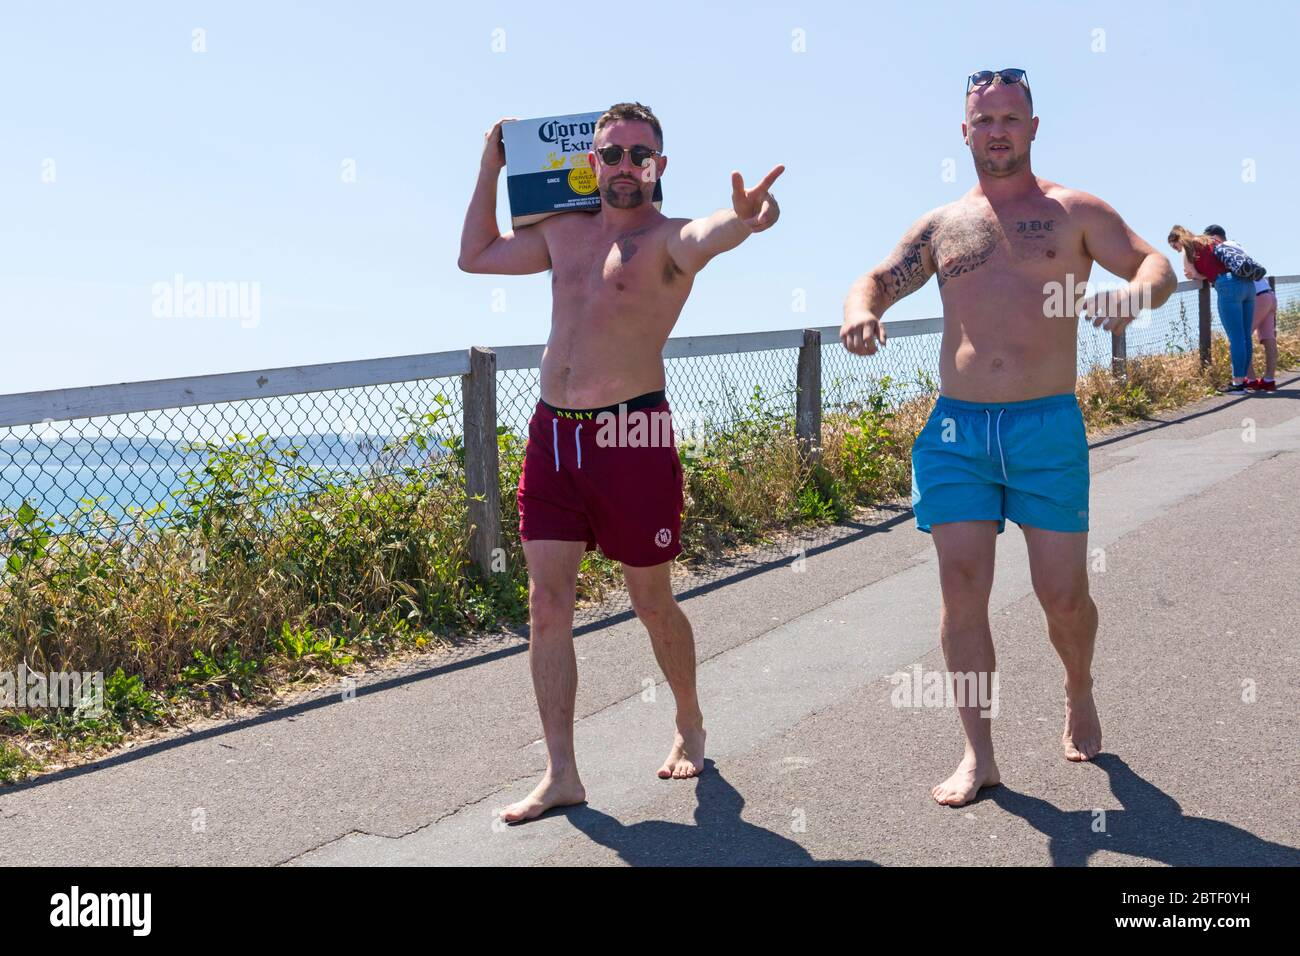 Bournemouth, Dorset UK. 25th May 2020. UK weather: scorching hot at Bournemouth beaches with clear blue skies and unbroken sunshine, as temperatures soar on Bank Holiday Monday. Sunseekers flock to the seaside and beaches are packed, with car parks full and cars left anywhere and everywhere. Ben and John head down to the beach with their supplies - a box of Corona! Credit: Carolyn Jenkins/Alamy Live News Stock Photo